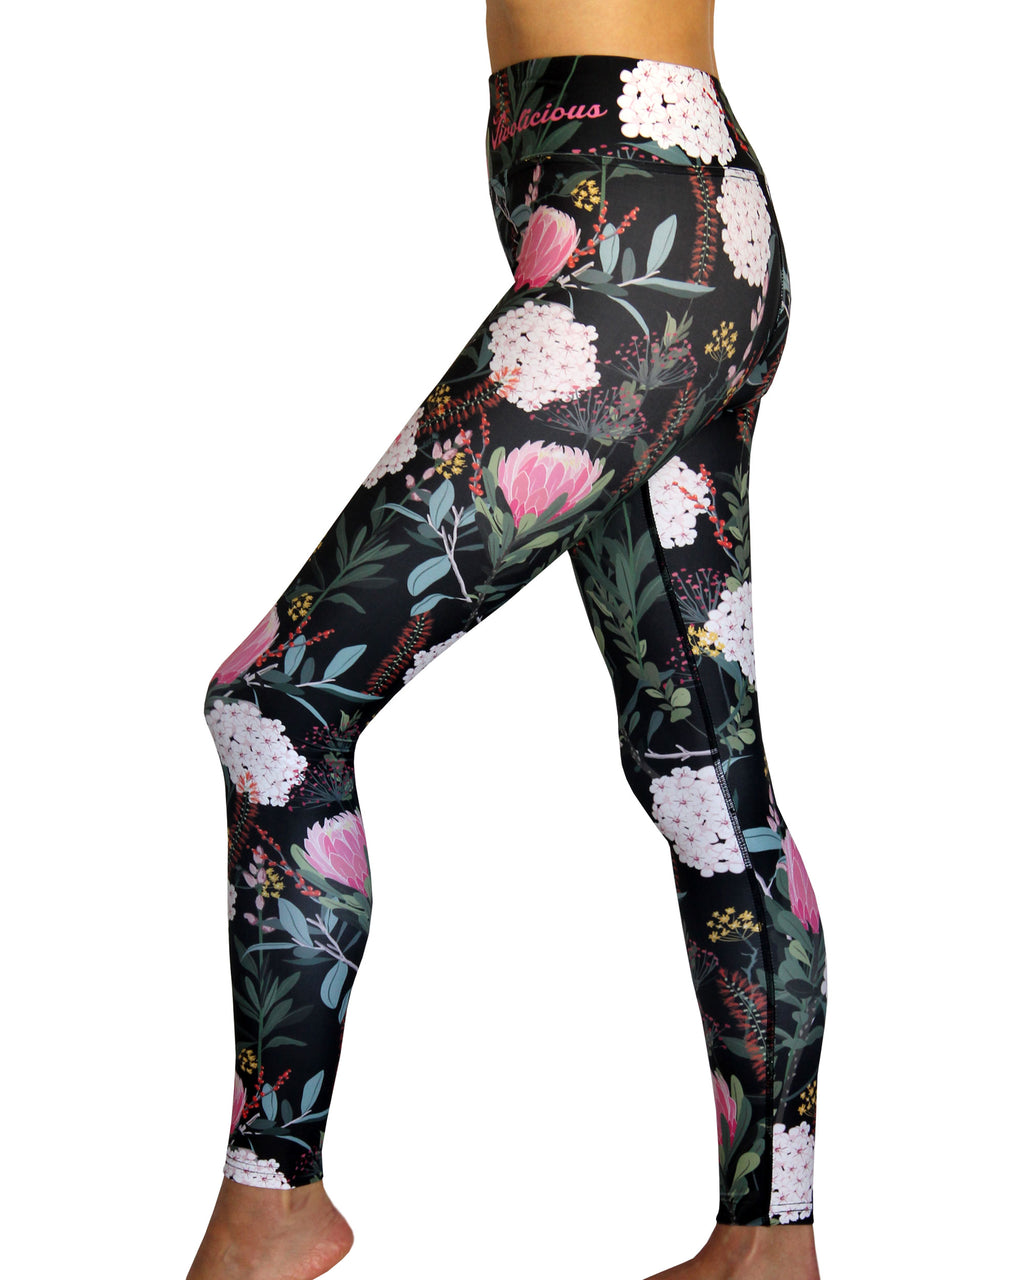 SUGARBUSH Tech Tights VIVOLICIOUS Active Wear Leggings